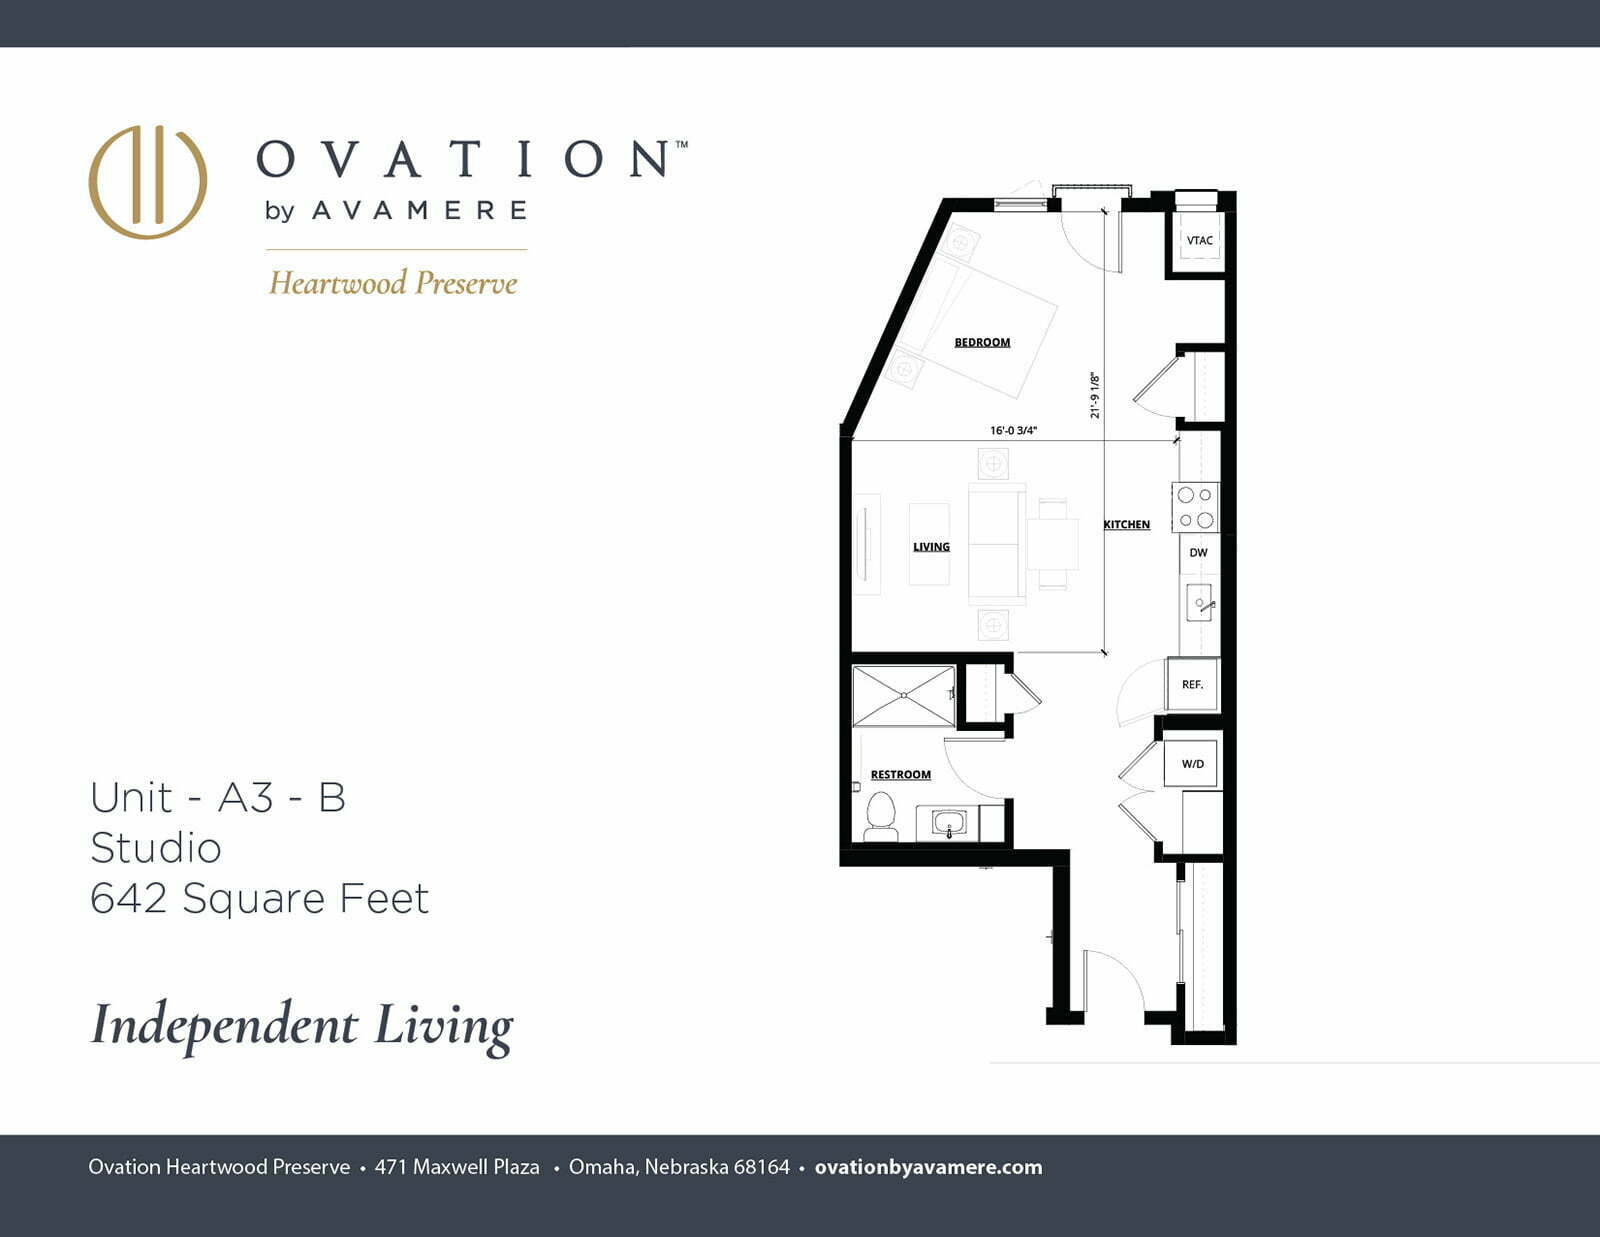 Independent Living | Room A3 - B